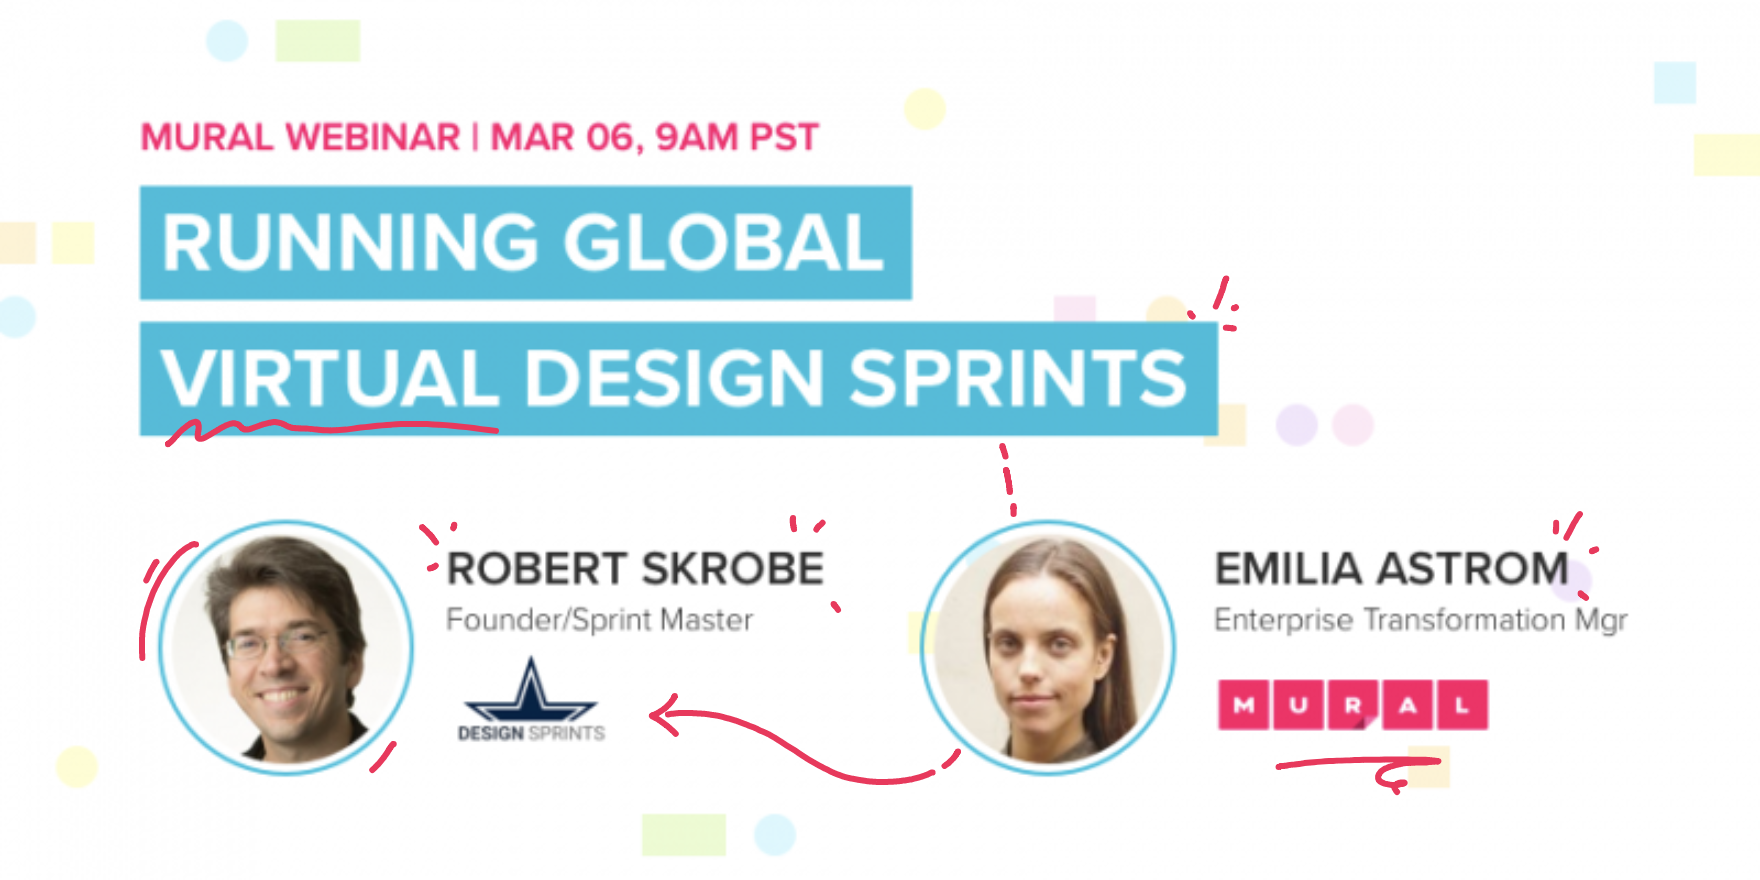 MURAL WEBINAR: Running Global Virtual Design Sprints